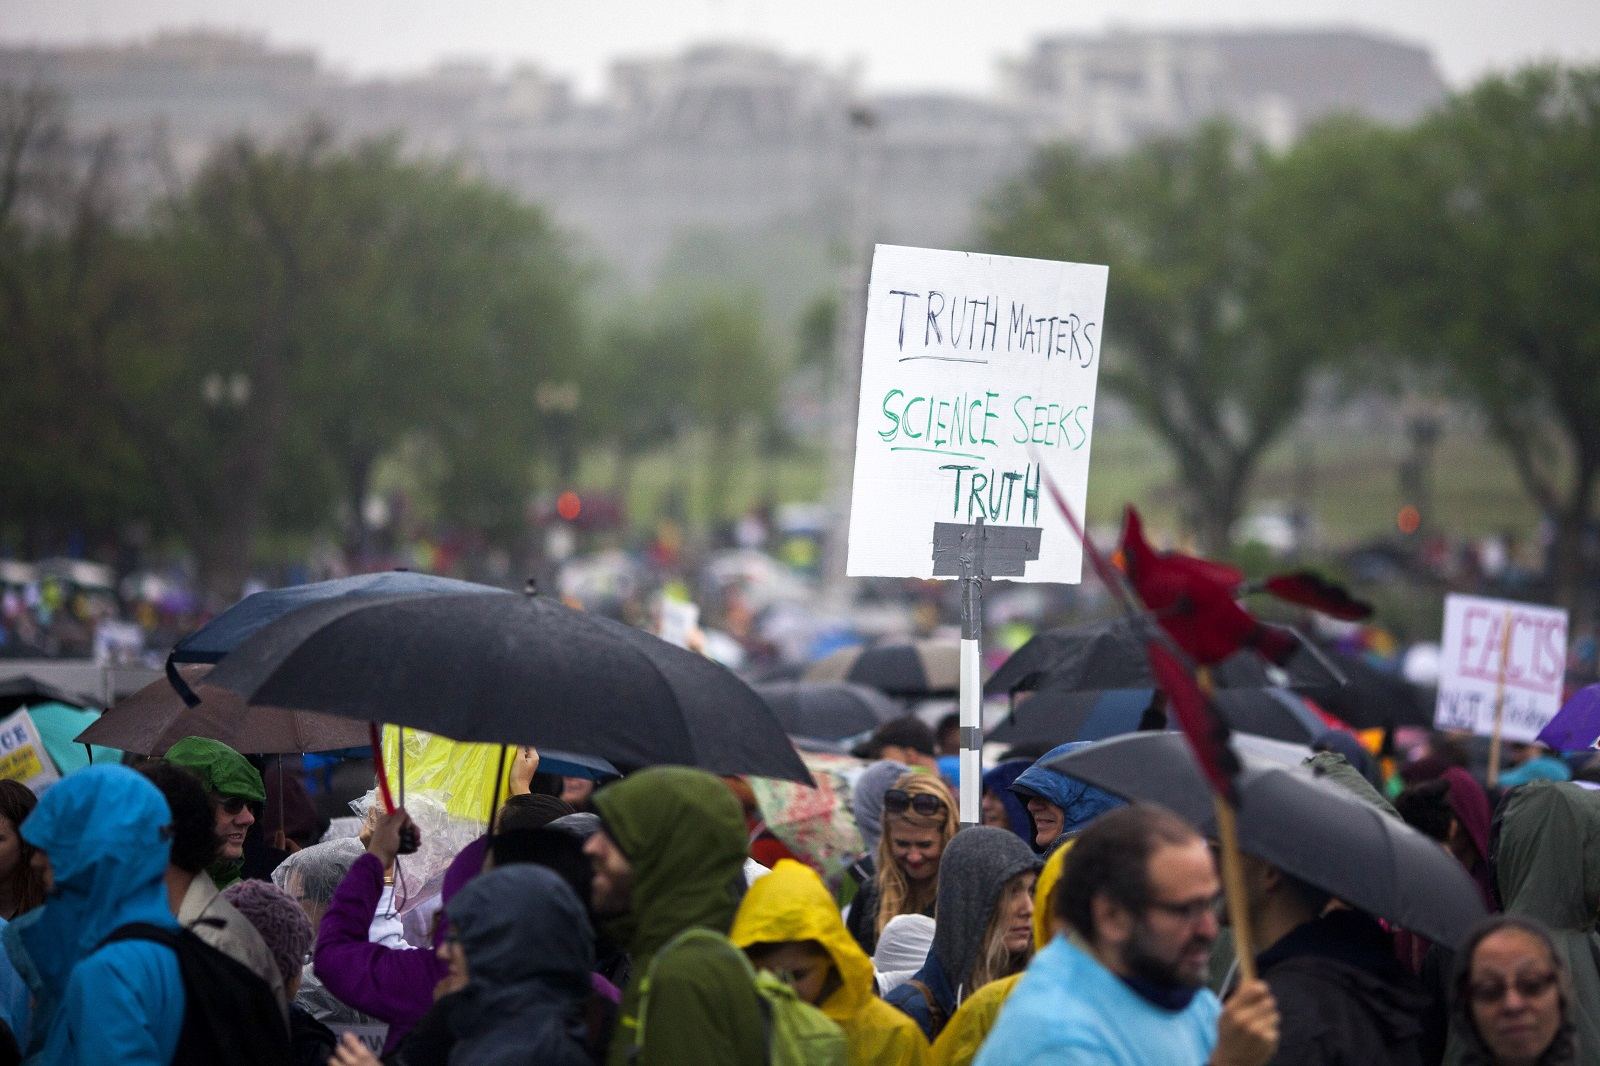 Scientists and supporters gather on the National Mall in Washington, D.C> for the rally before the March for Science last weekend. (Jessica Kourkounis/Getty Images)